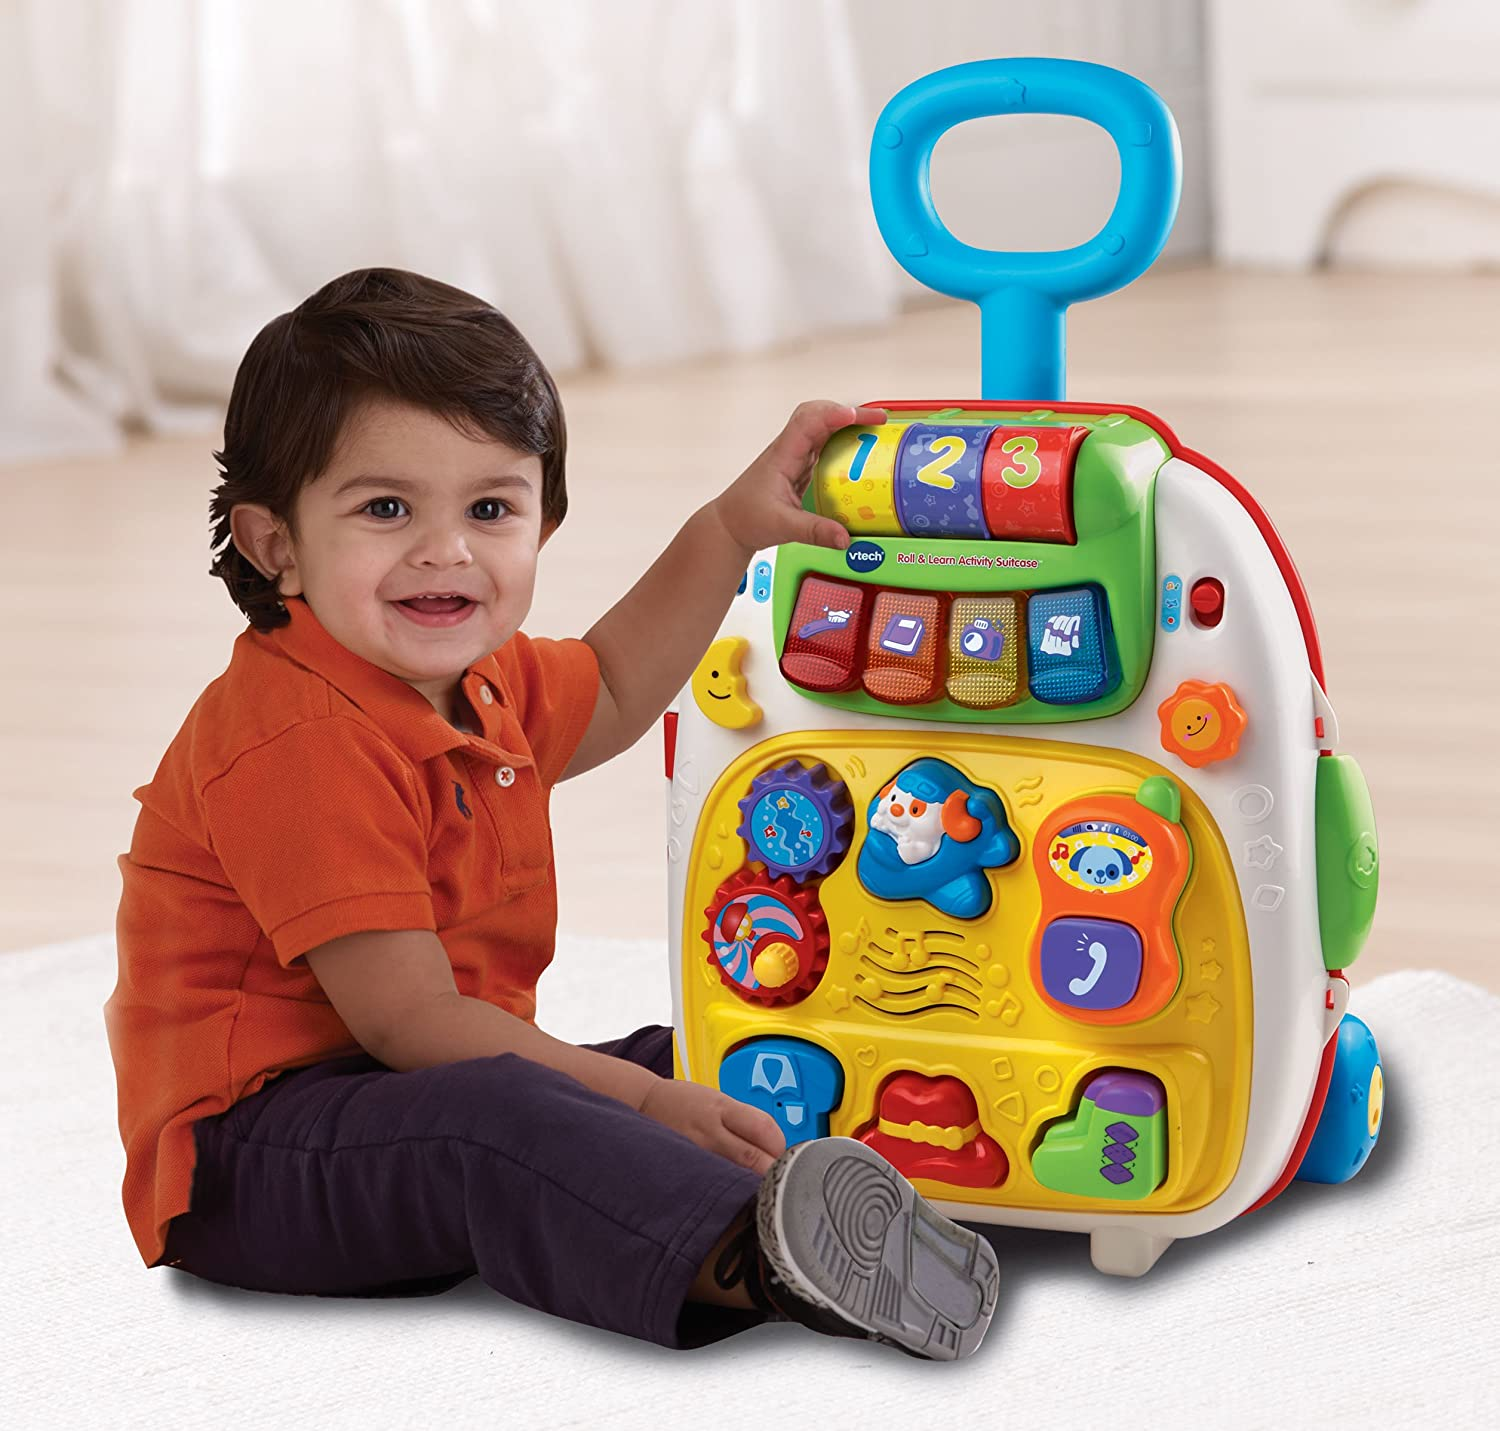 The best gift ideas for a 4 year old boy the pinning mama - Toys For One Year Old Submited Images